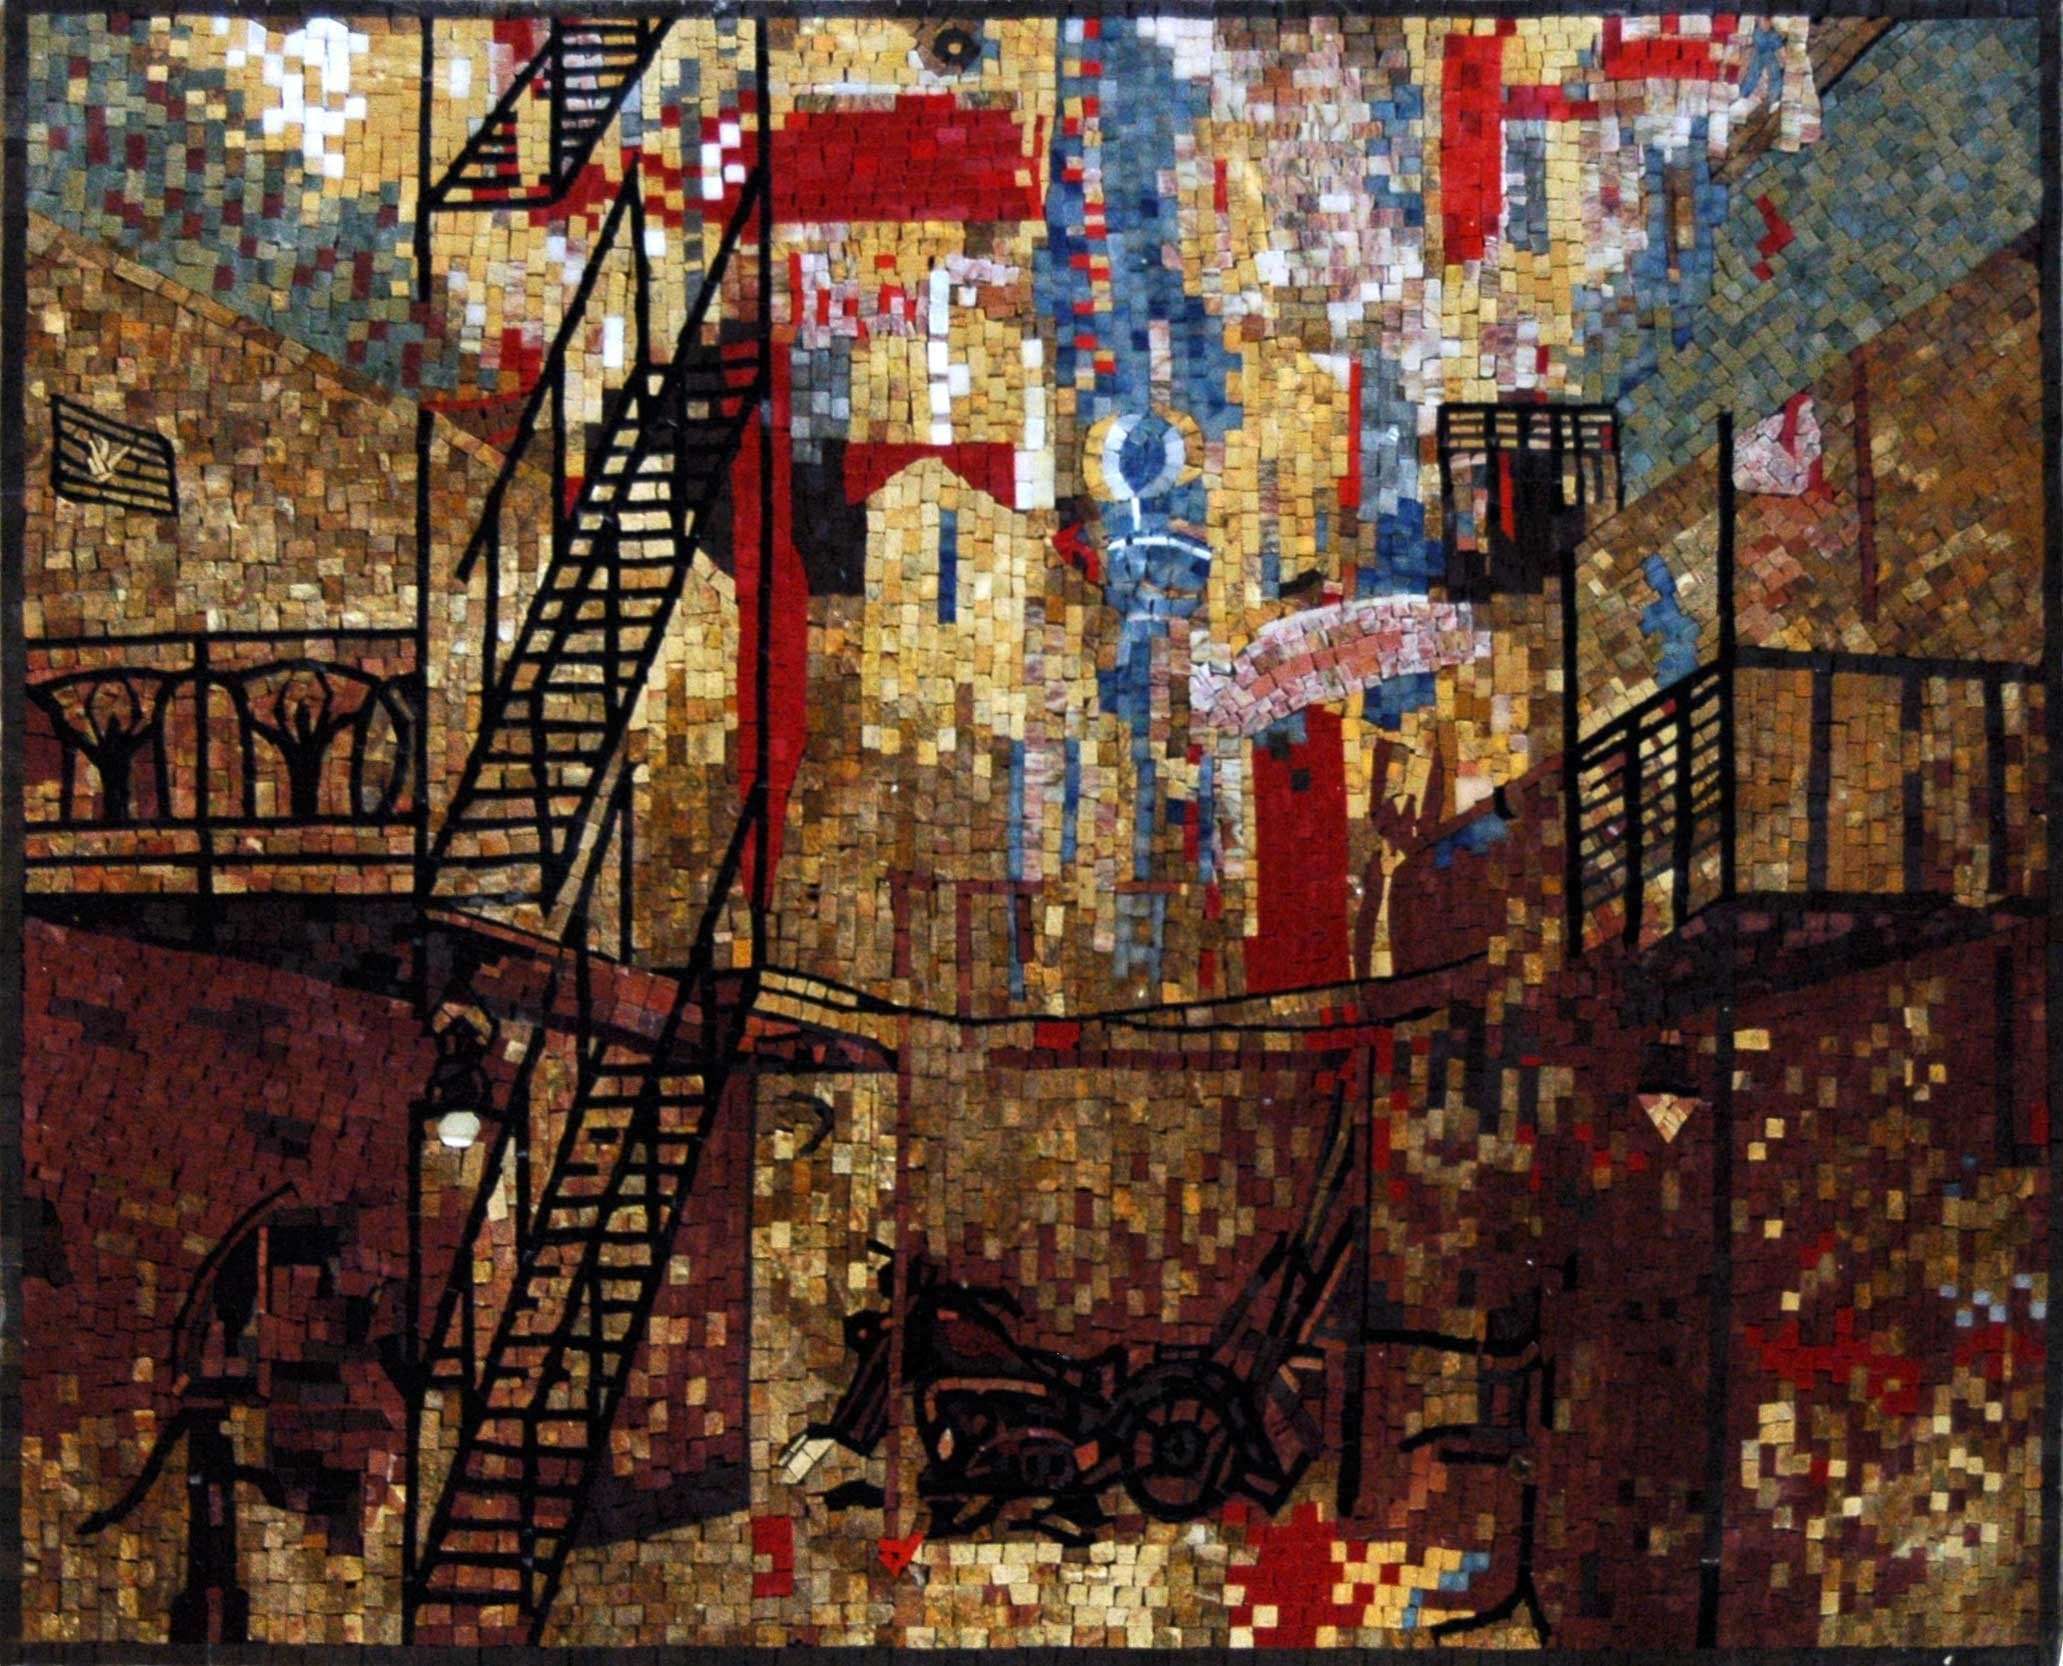 Abstract Mosaic Art- Urban Cityscape